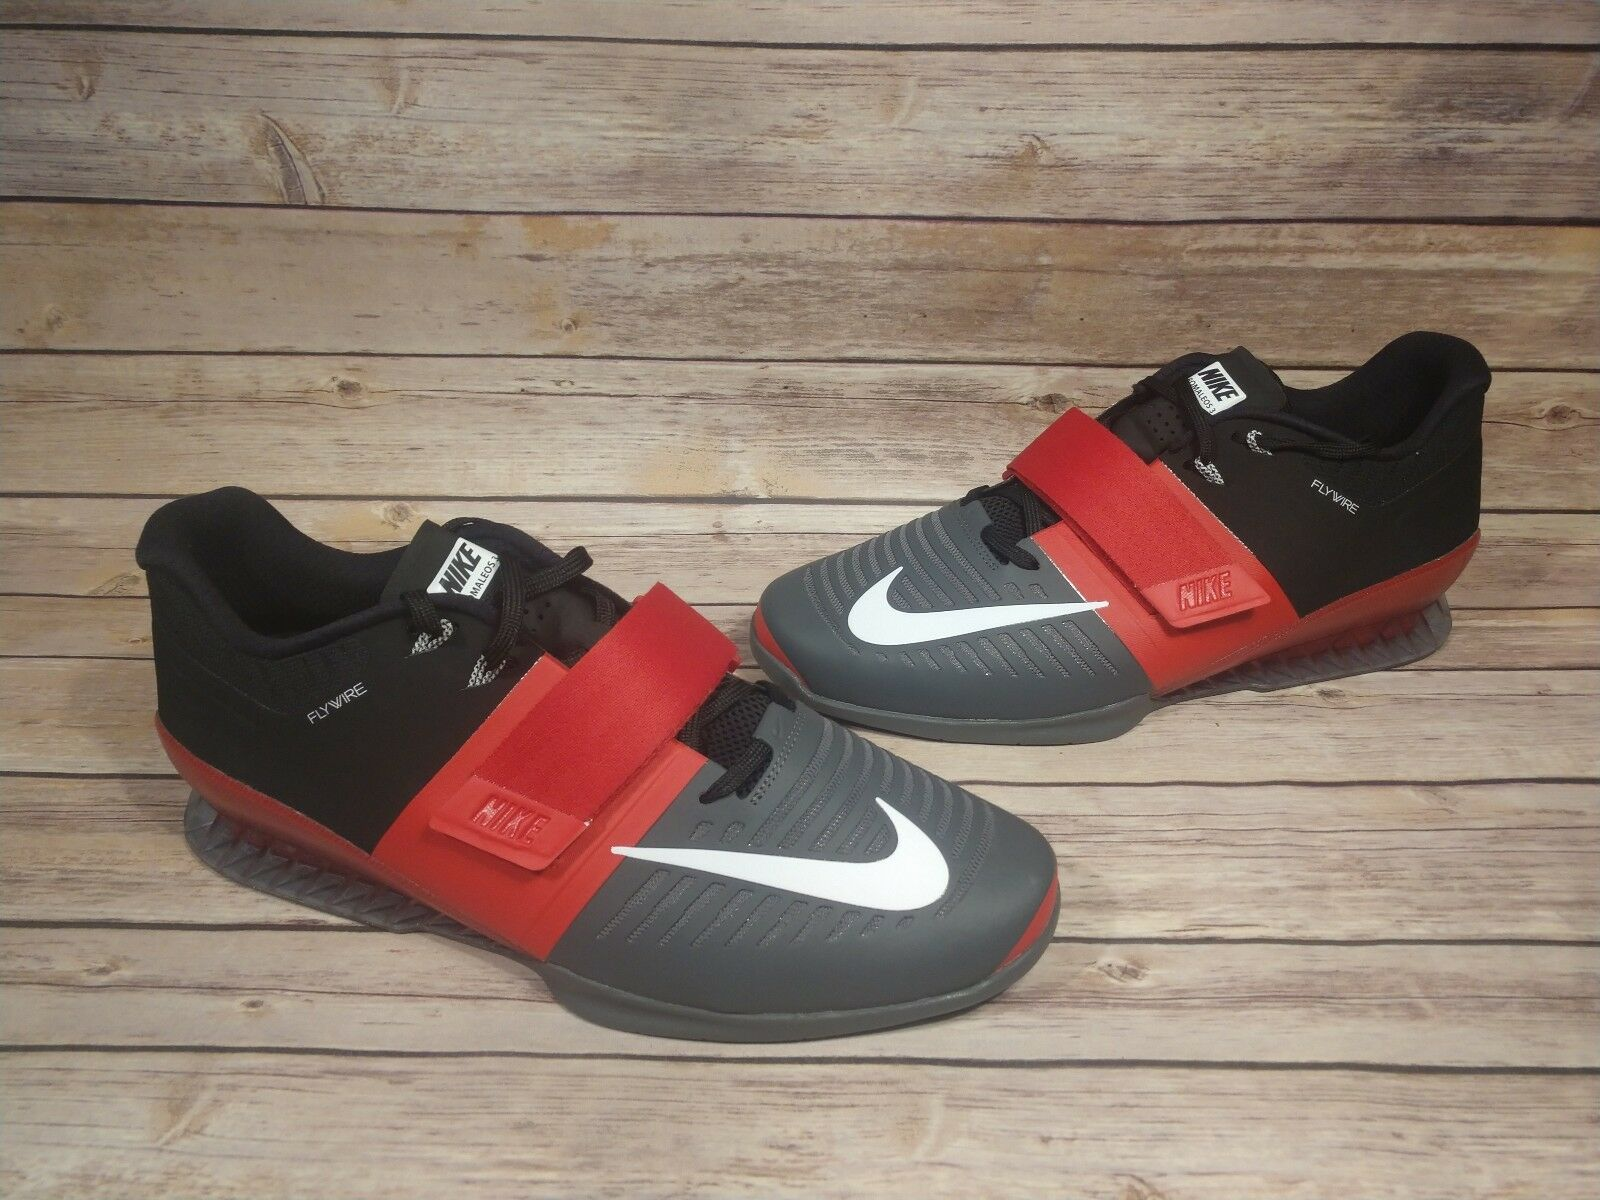 competitive price e8d51 1cd3b Mens Nike Romaleos 3 Black Black Black Red Crossfit Weightlifting Shoes  852933 600 Size 15 d601e2